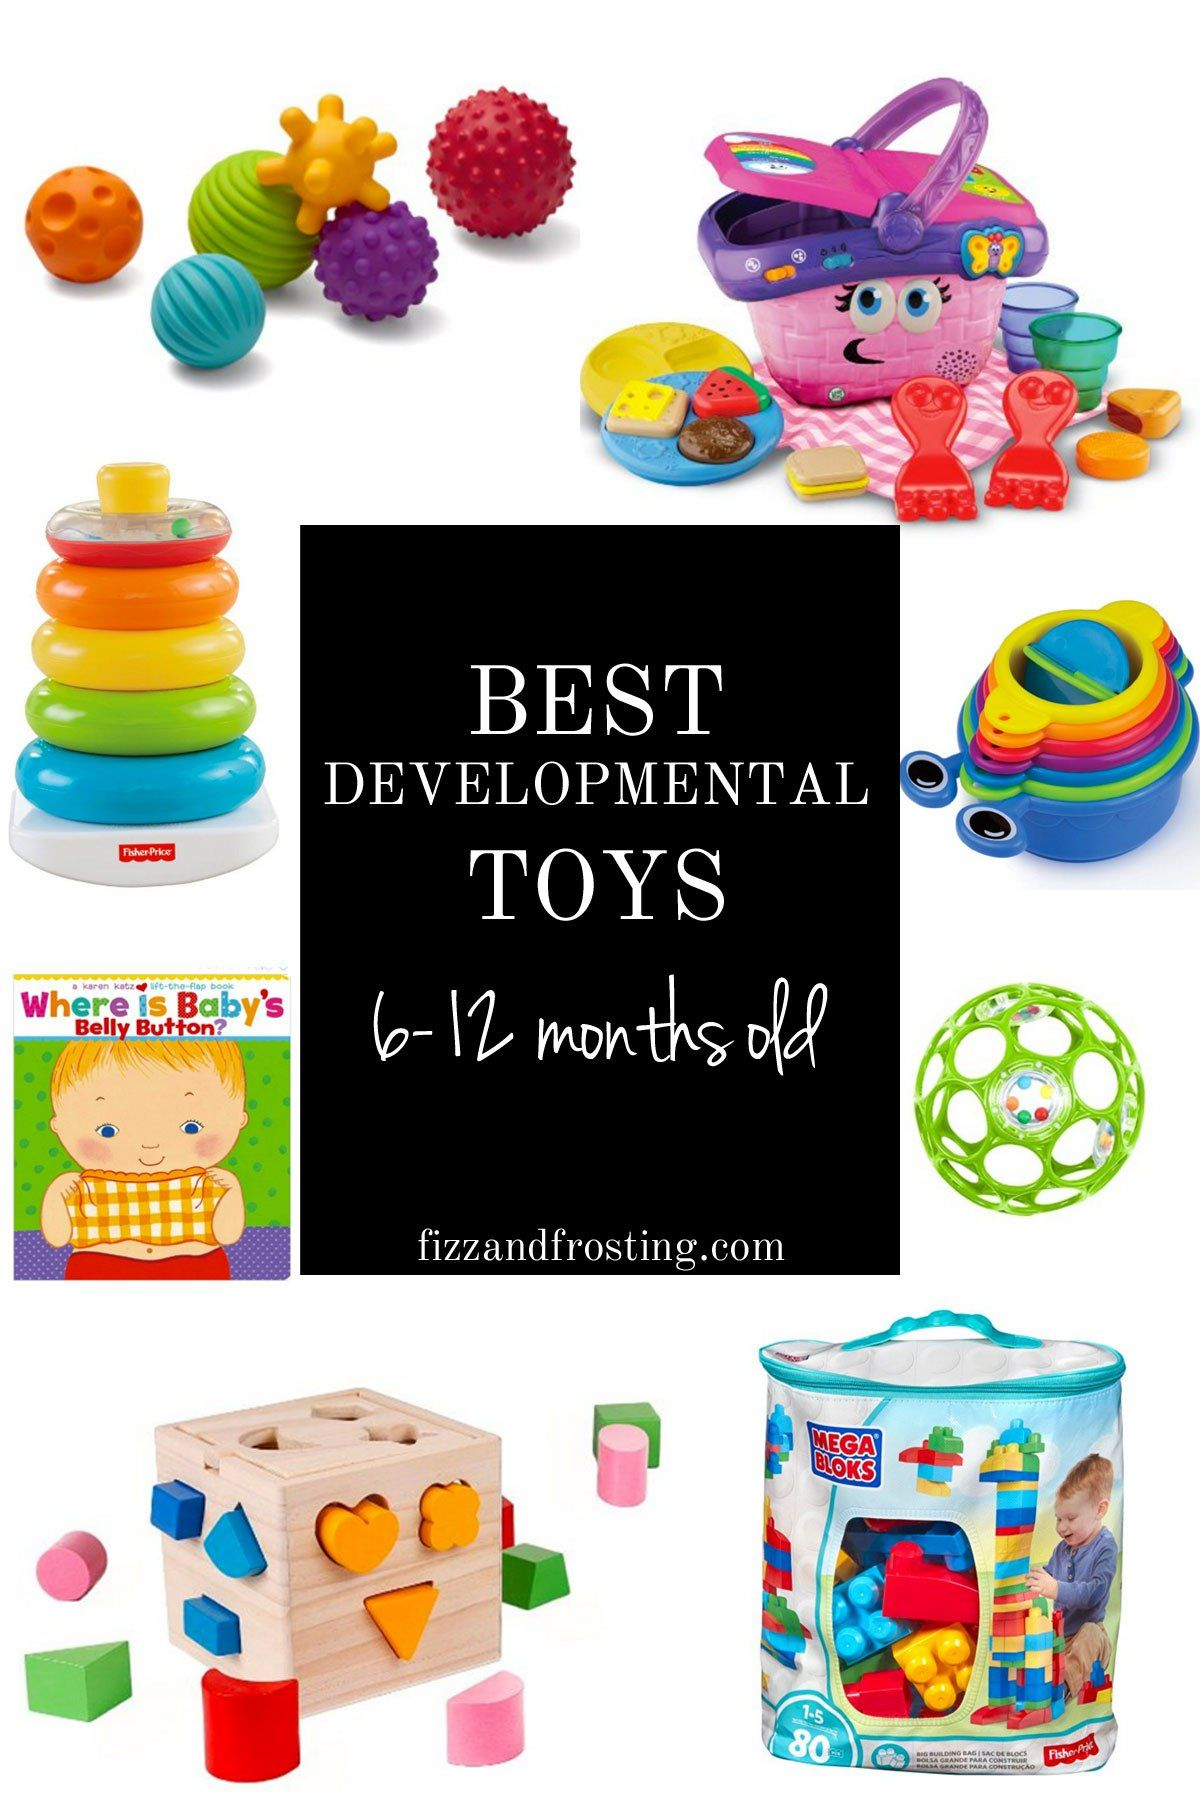 Educational Toys For Babies 6 12 Months Old Www Fizzandfrosting